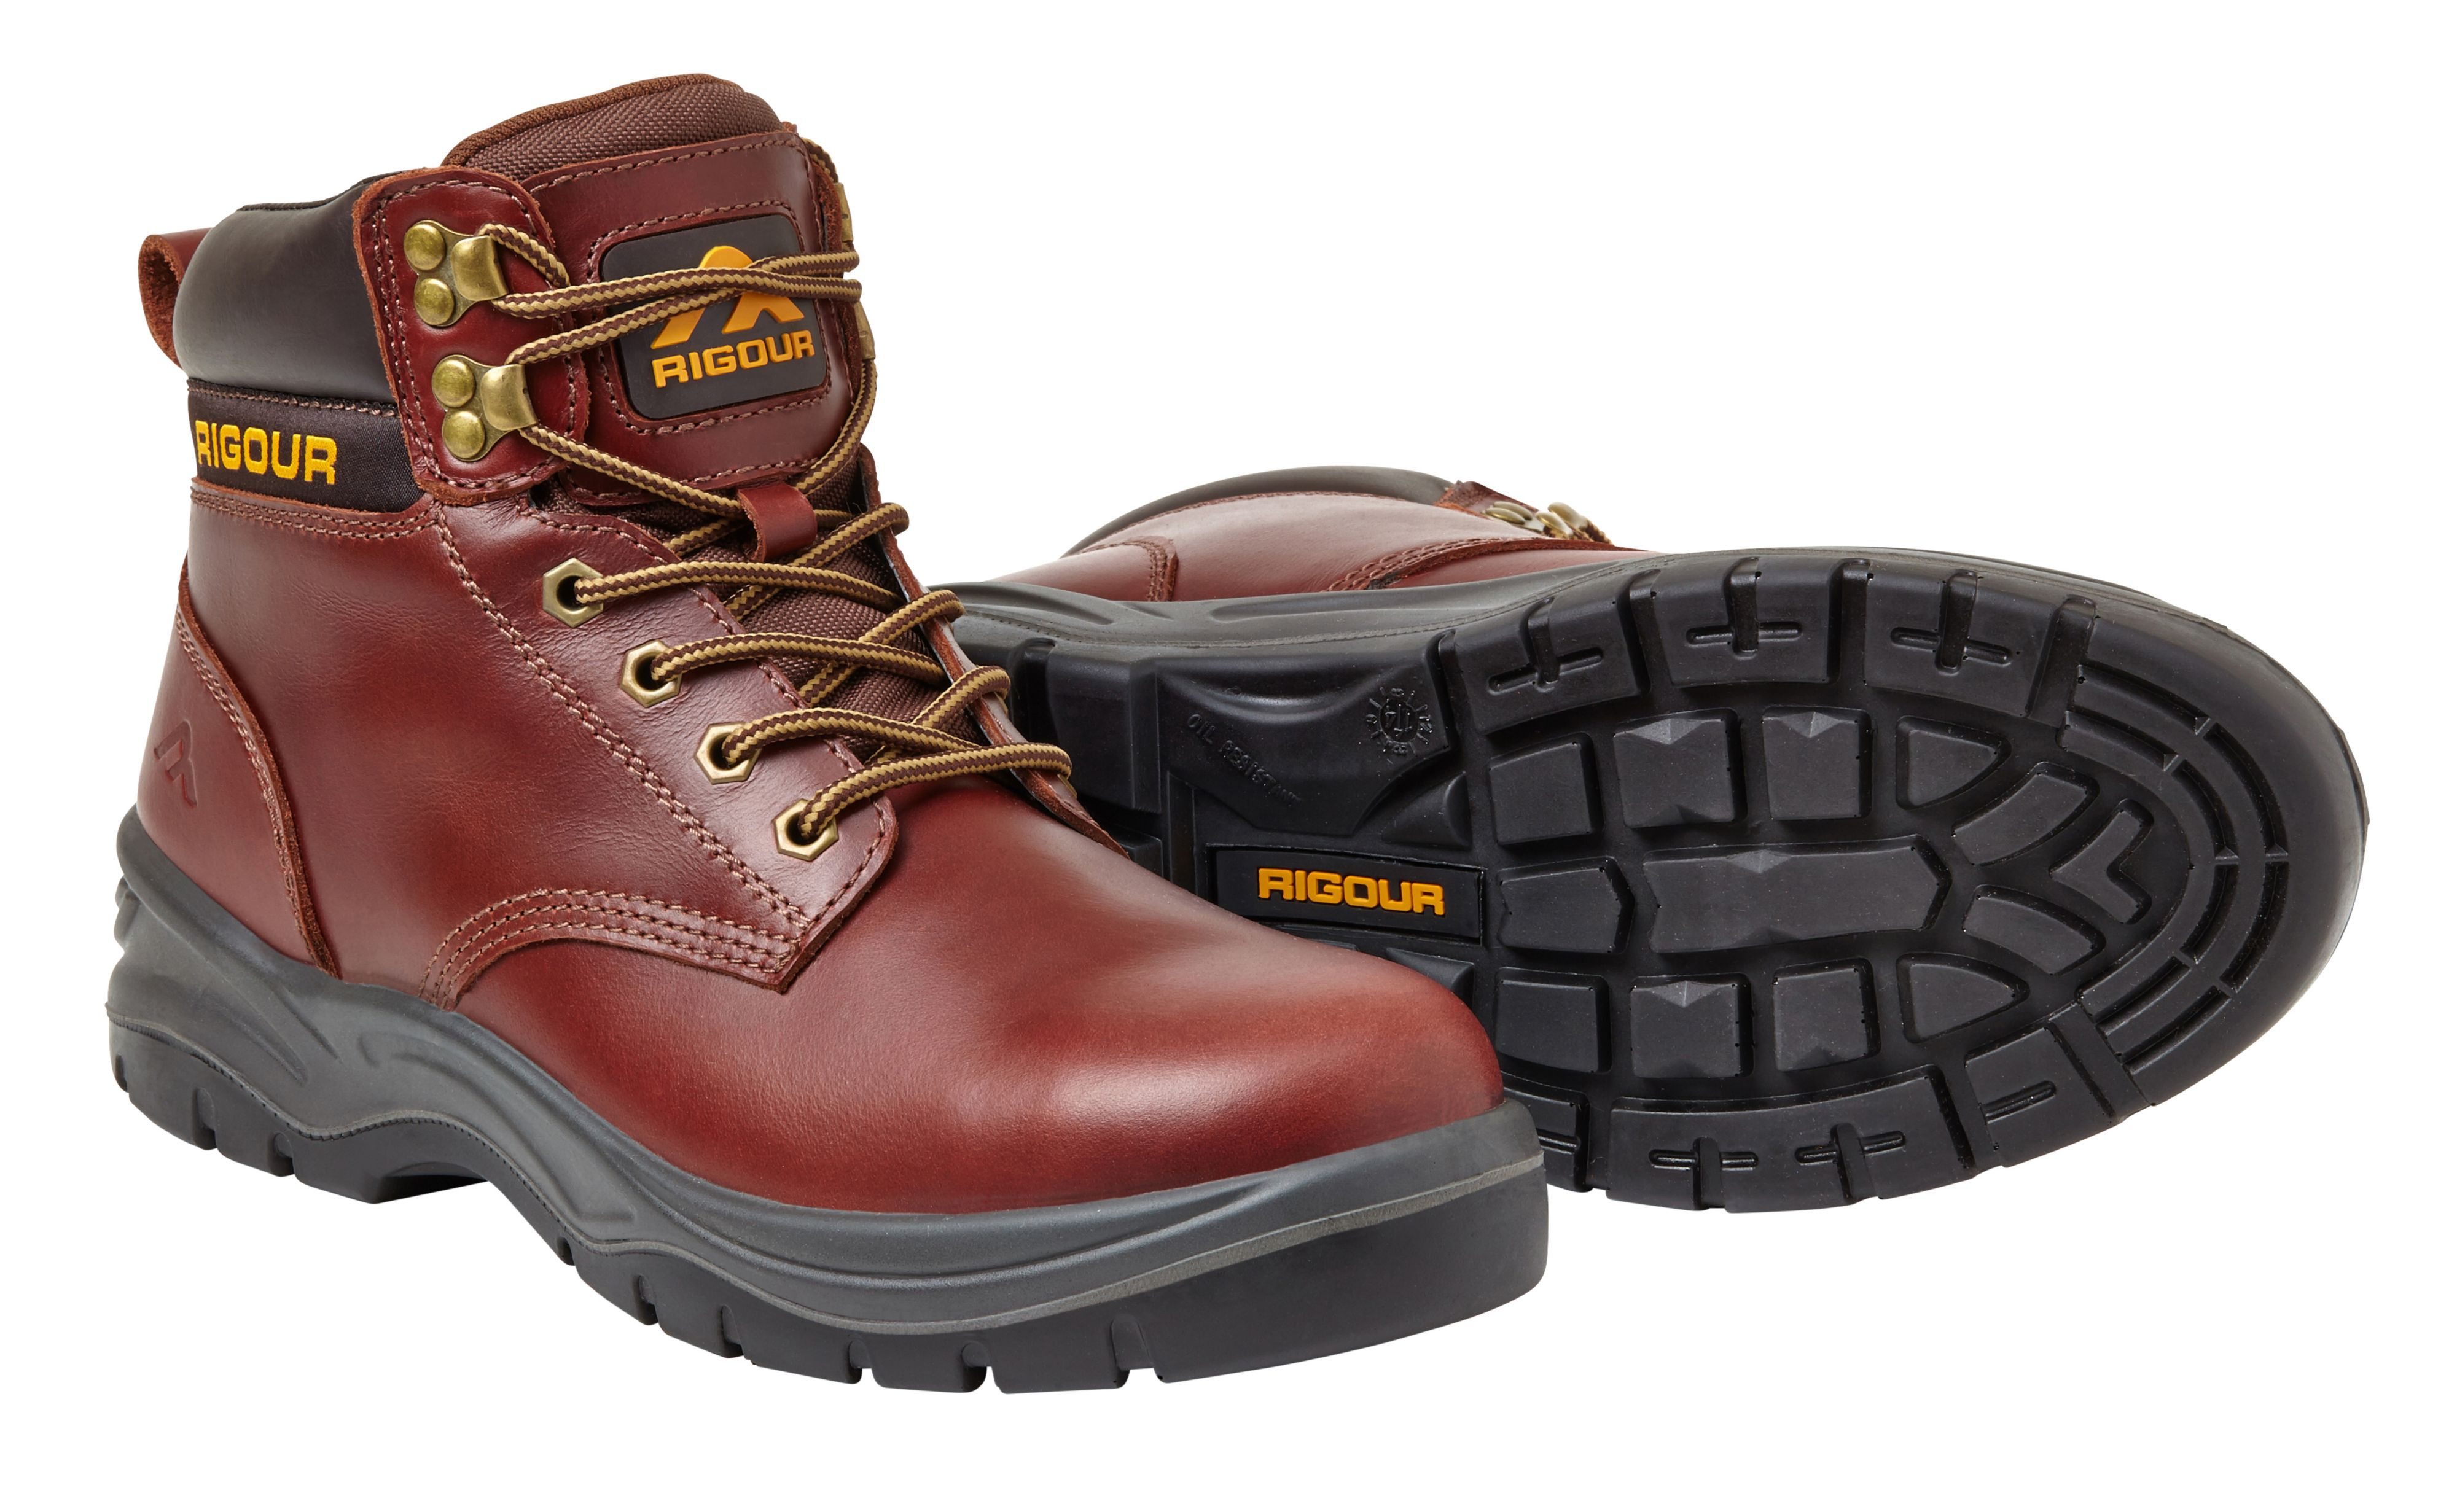 018e63b3aef Rigour Black Waterproof boots, Size 9 | Departments | DIY at B&Q